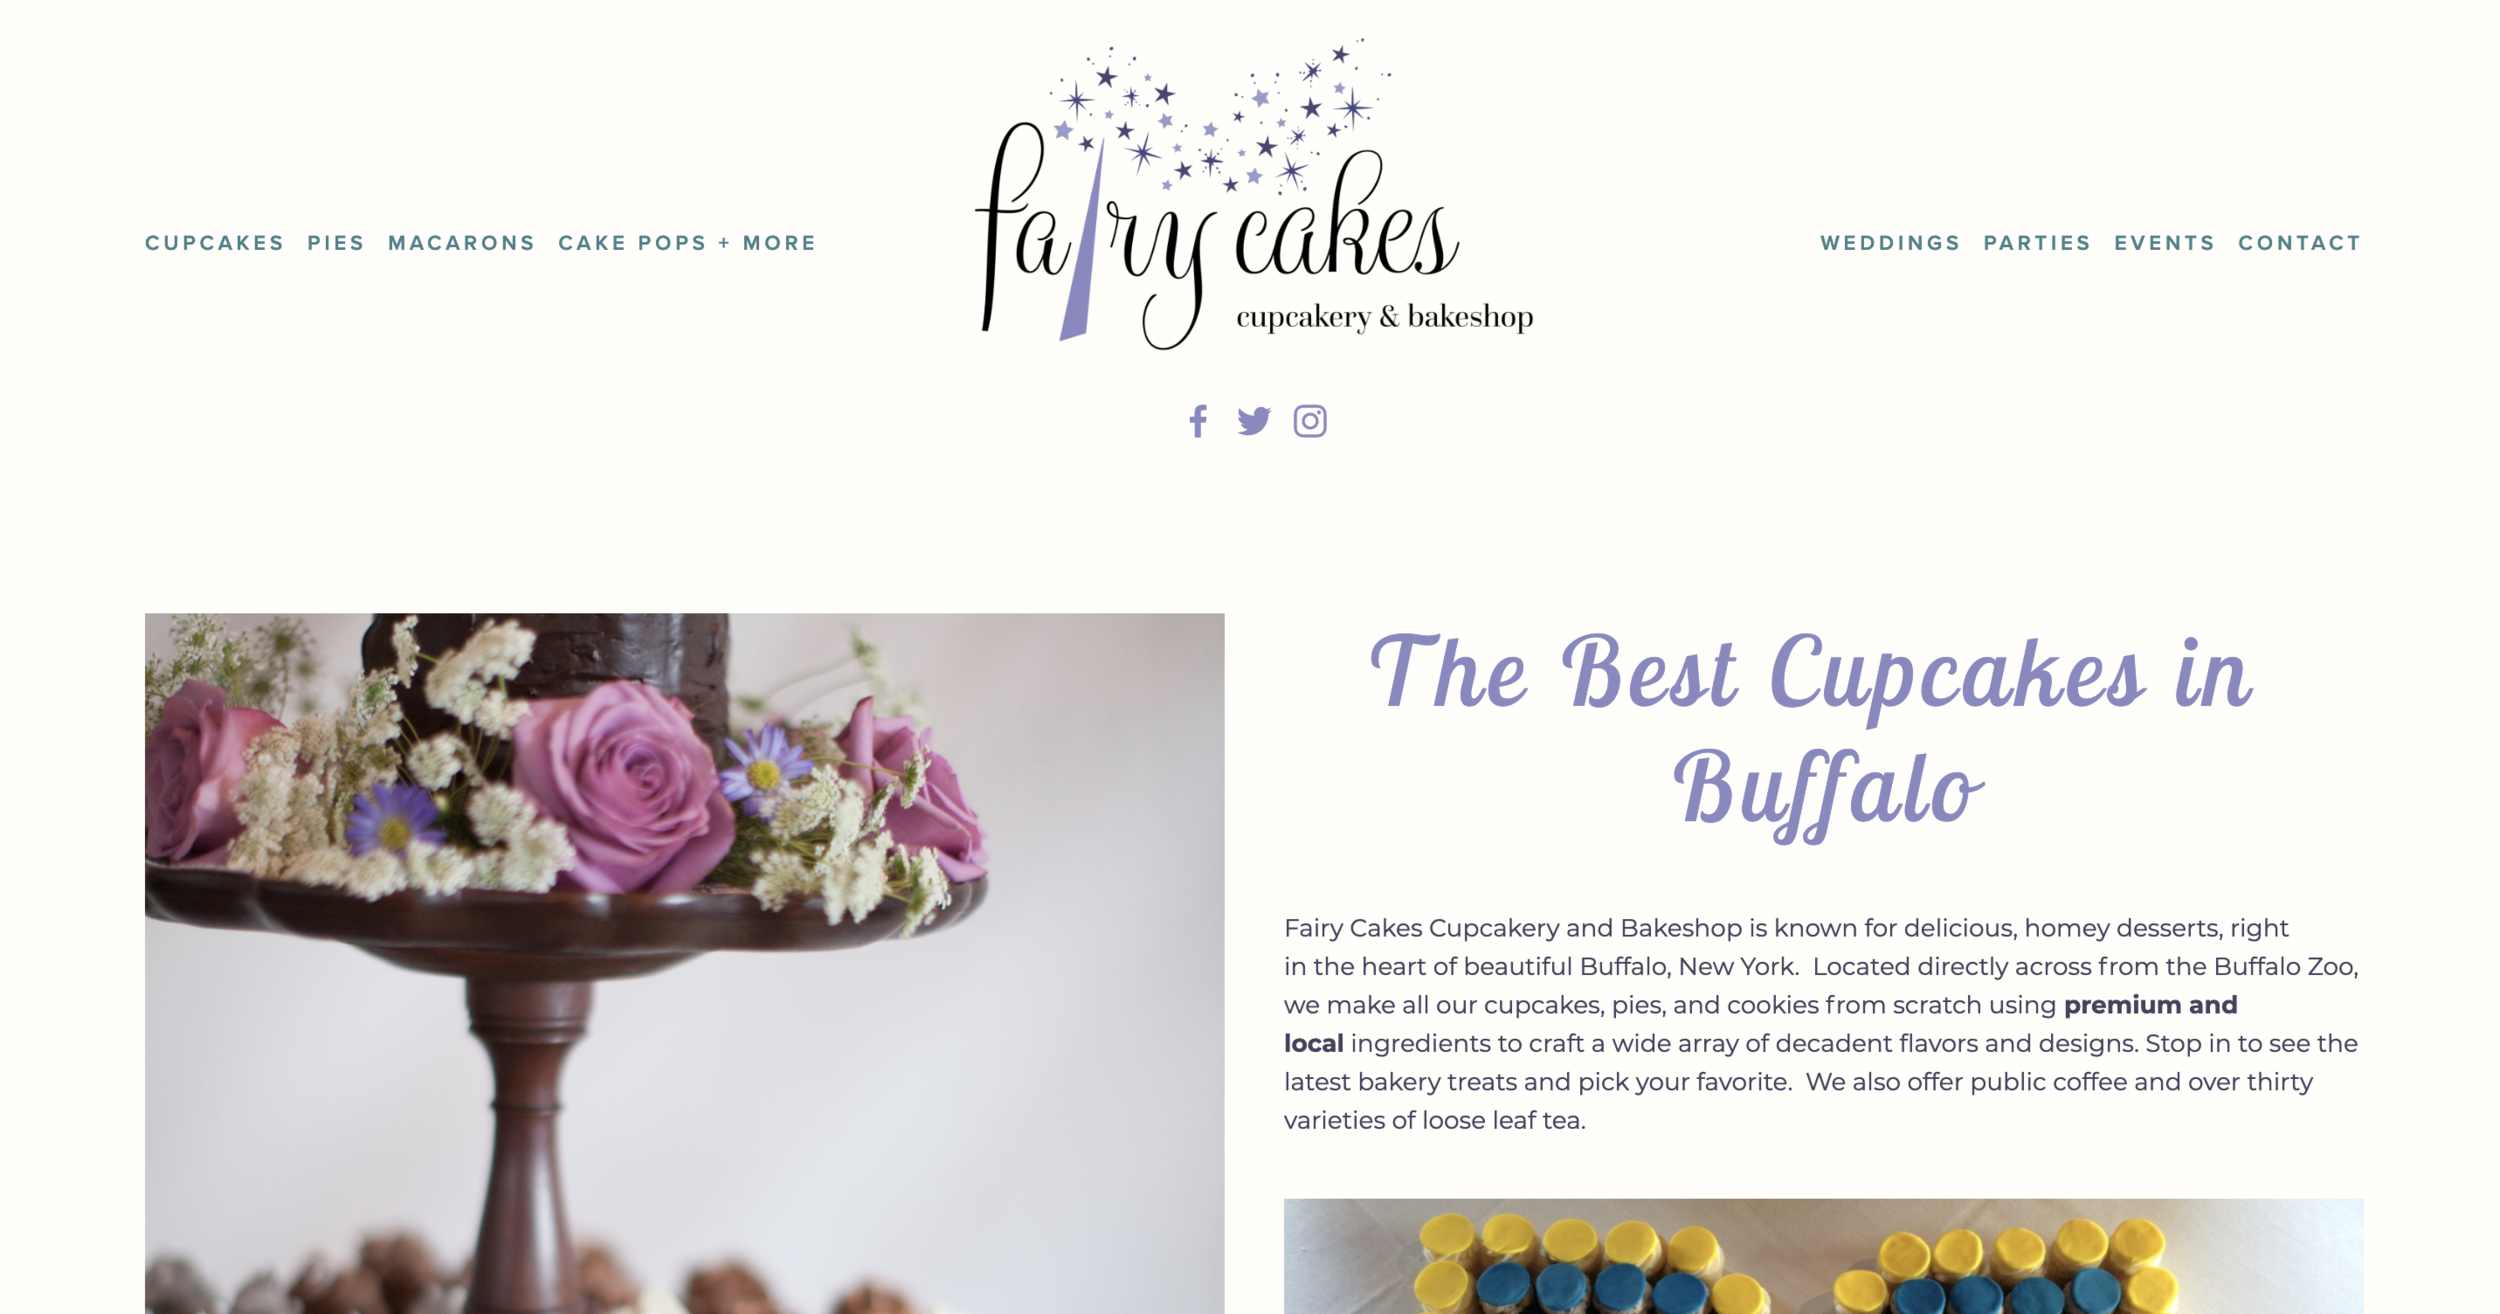 New website design of Fairy Cakes Cupcakes in Buffalo, NY by Persimmon Development